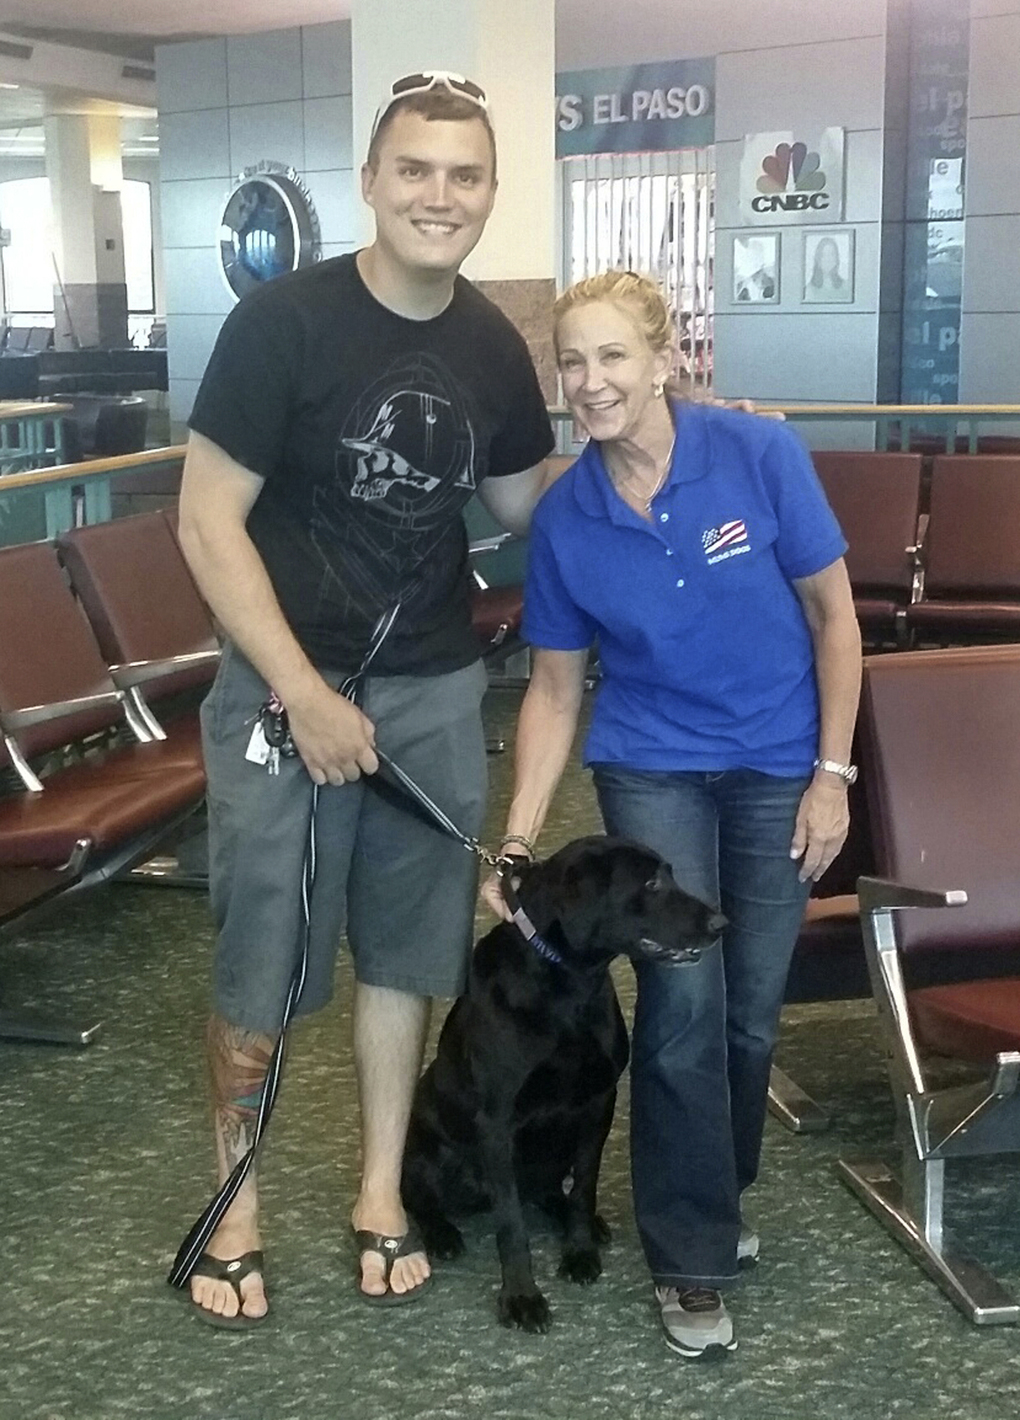 Flight Attendant Reunites Soldiers and Their Dogs